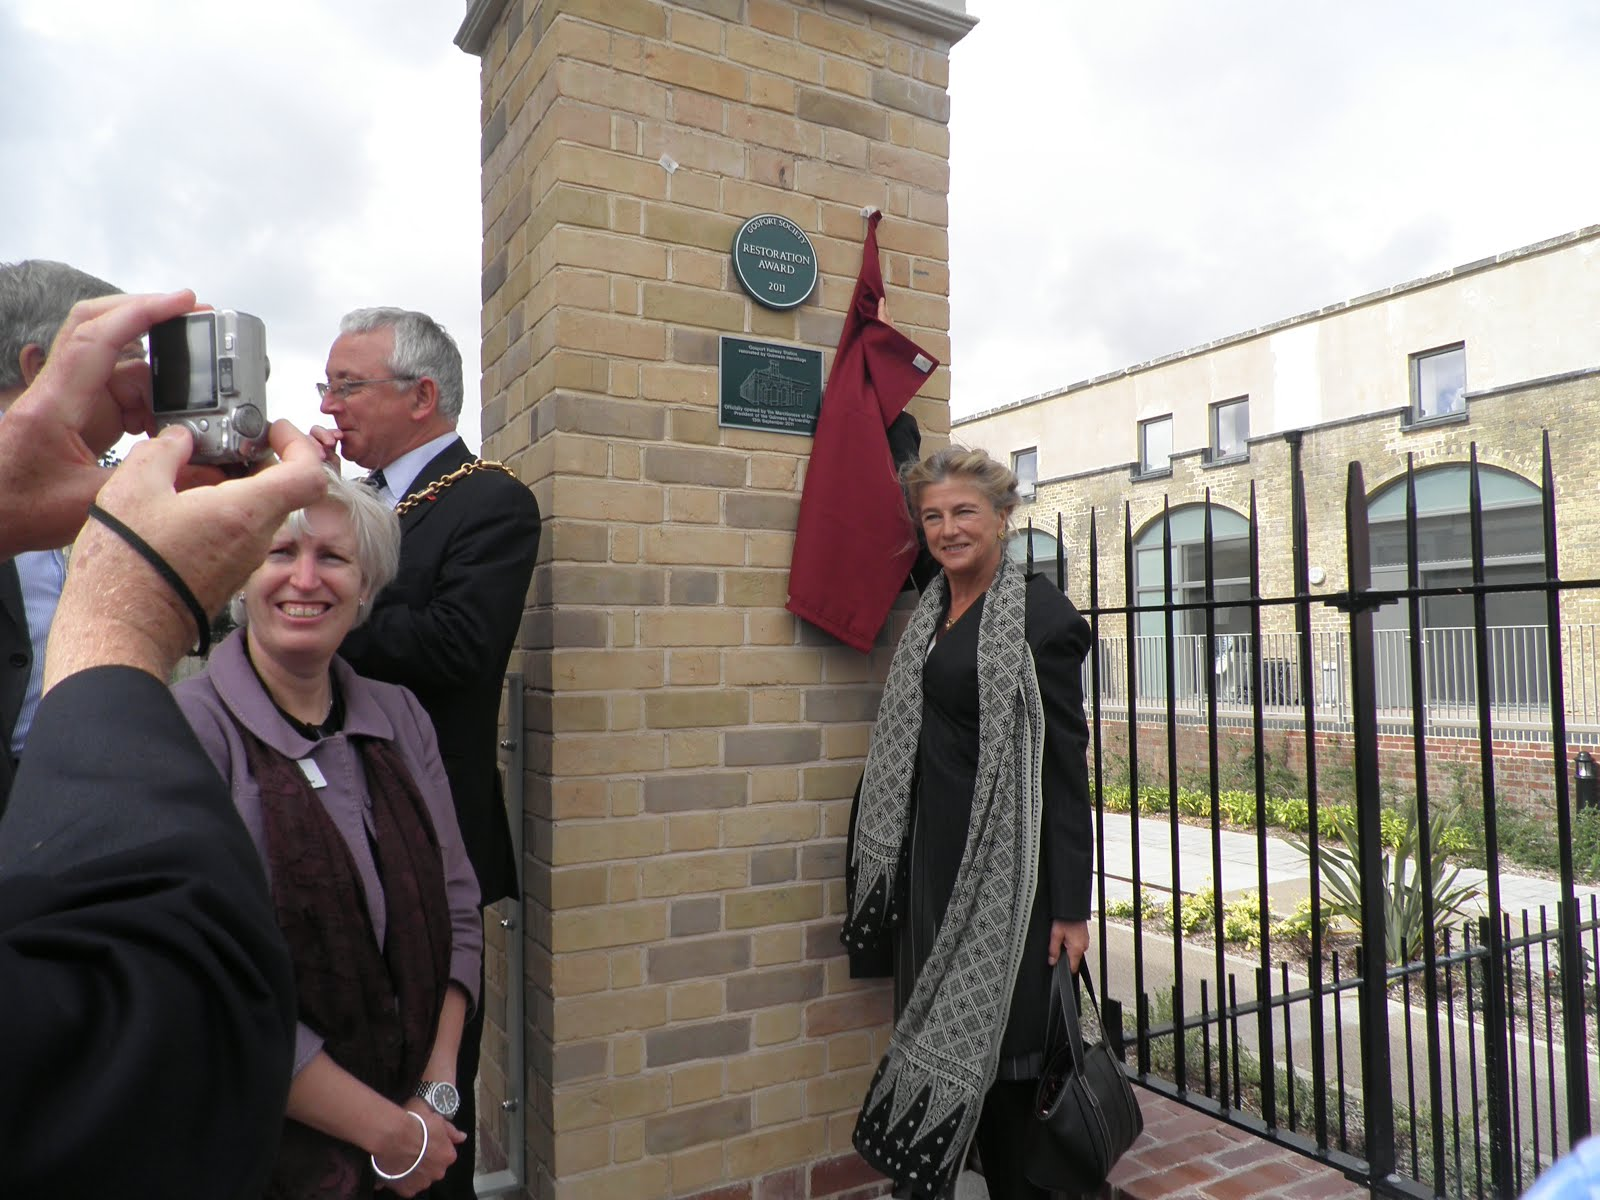 Lady Antonia opening the refurbished station